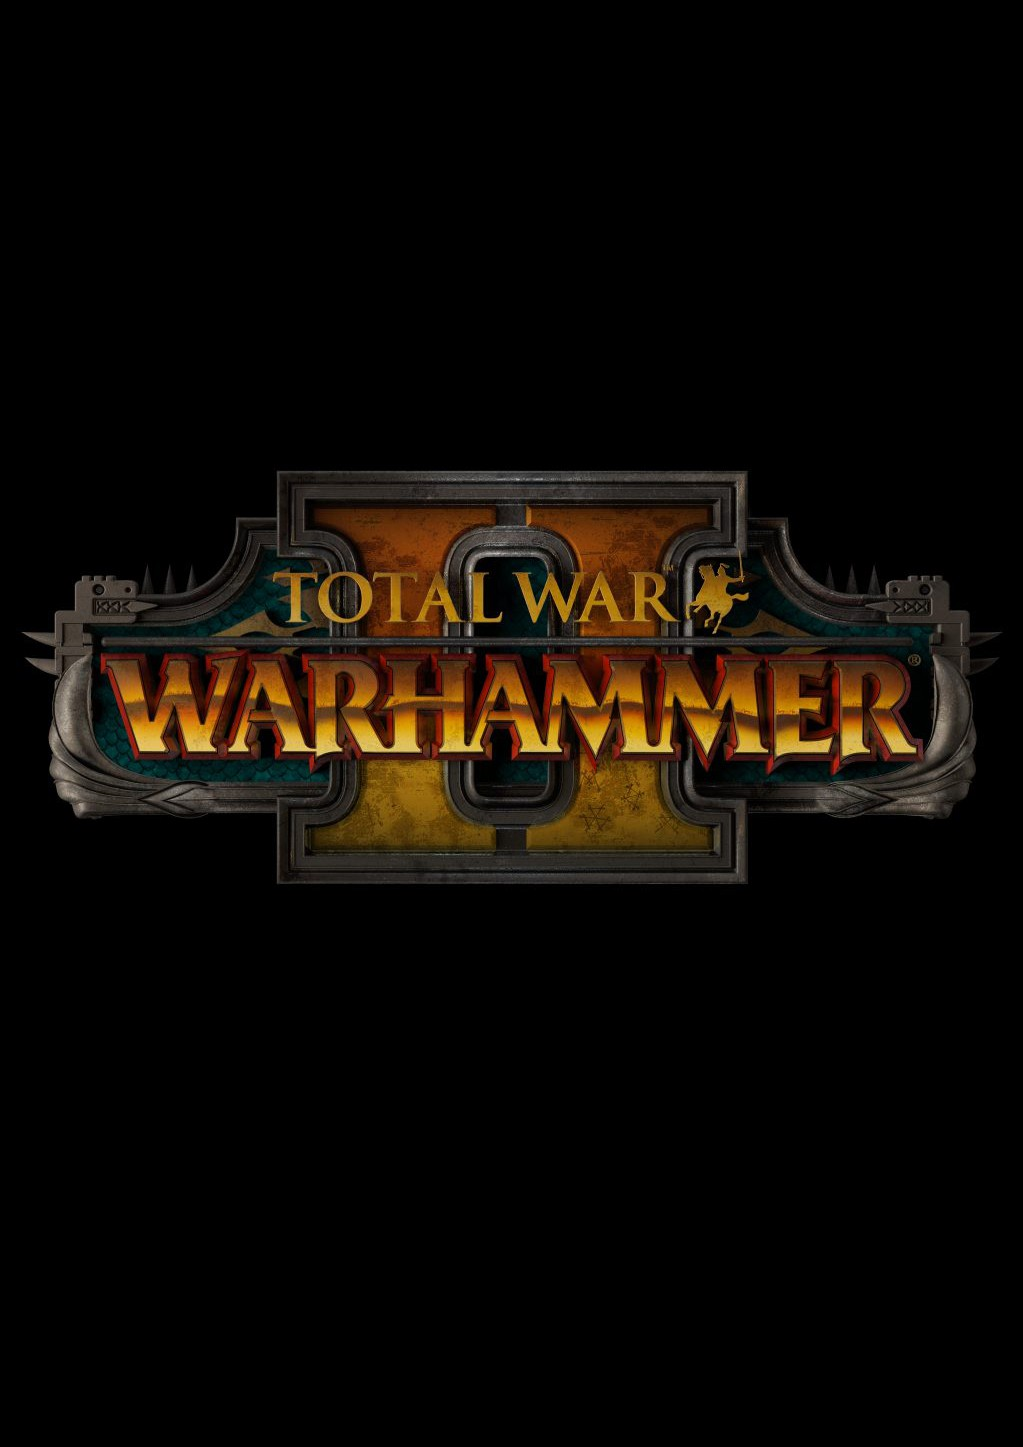 Total War WARHAMMER 2 Steam Key EU